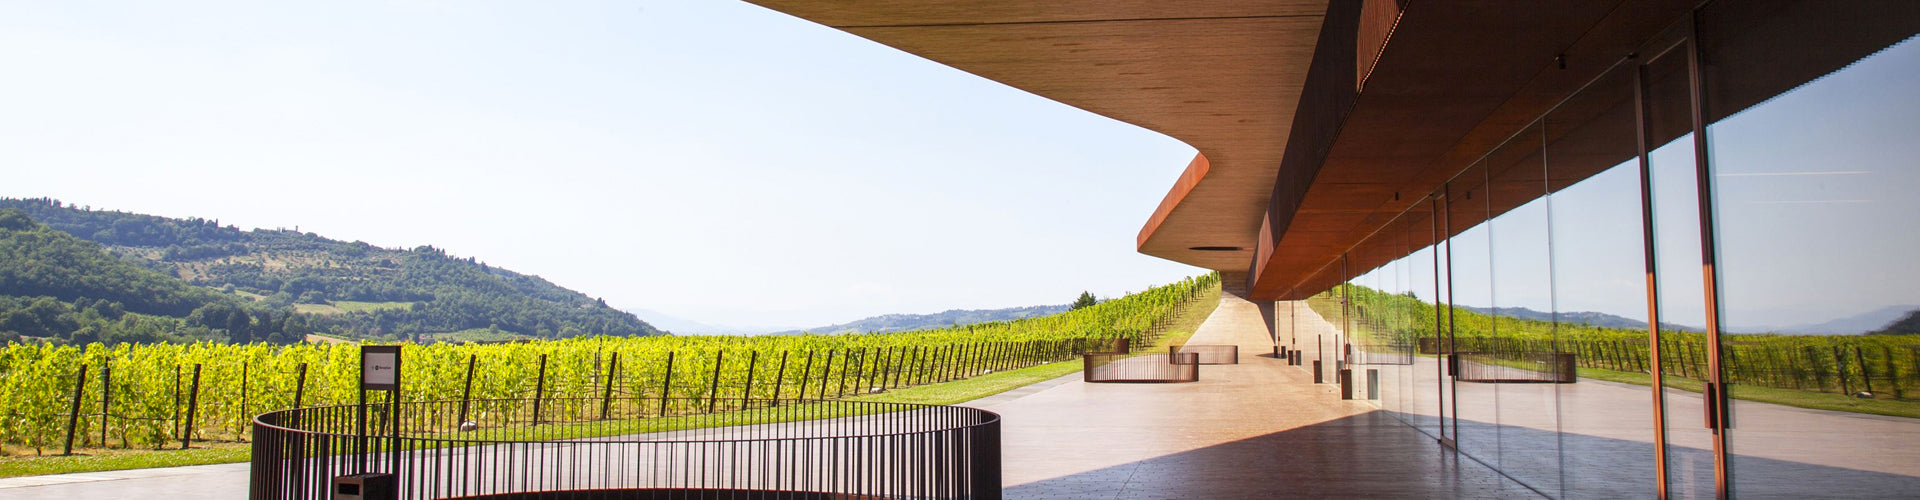 Marchesi Antinori Winery Building in Chianti Classico